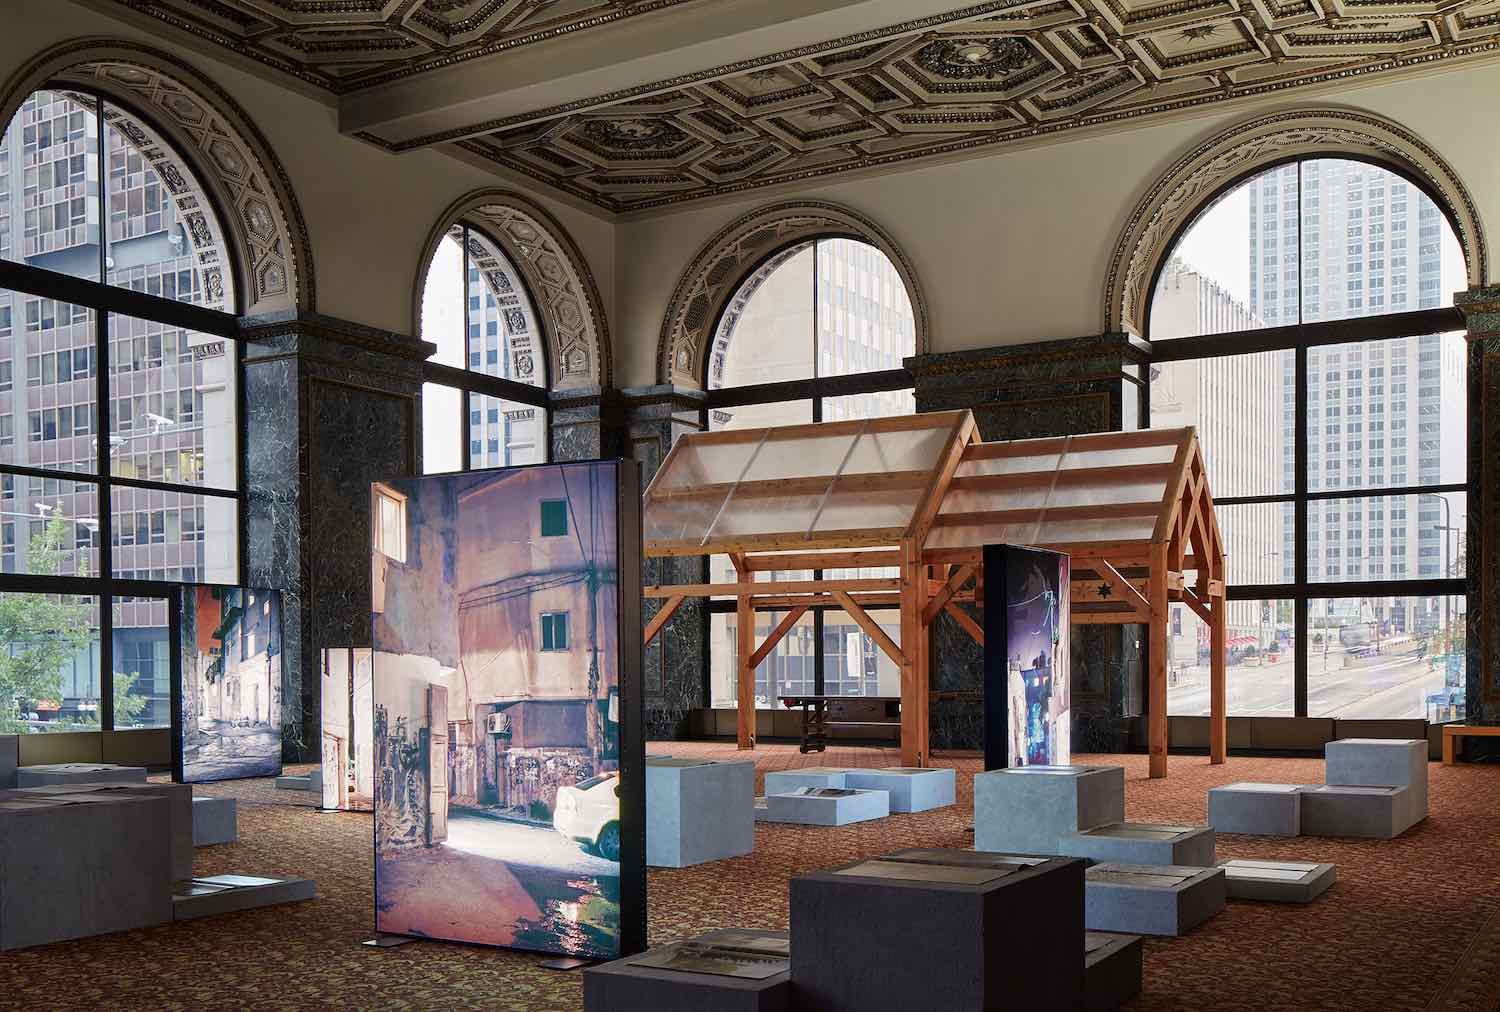 Chicago Architecture Biennial 2019 - Photo by Kendall McCaugherty.